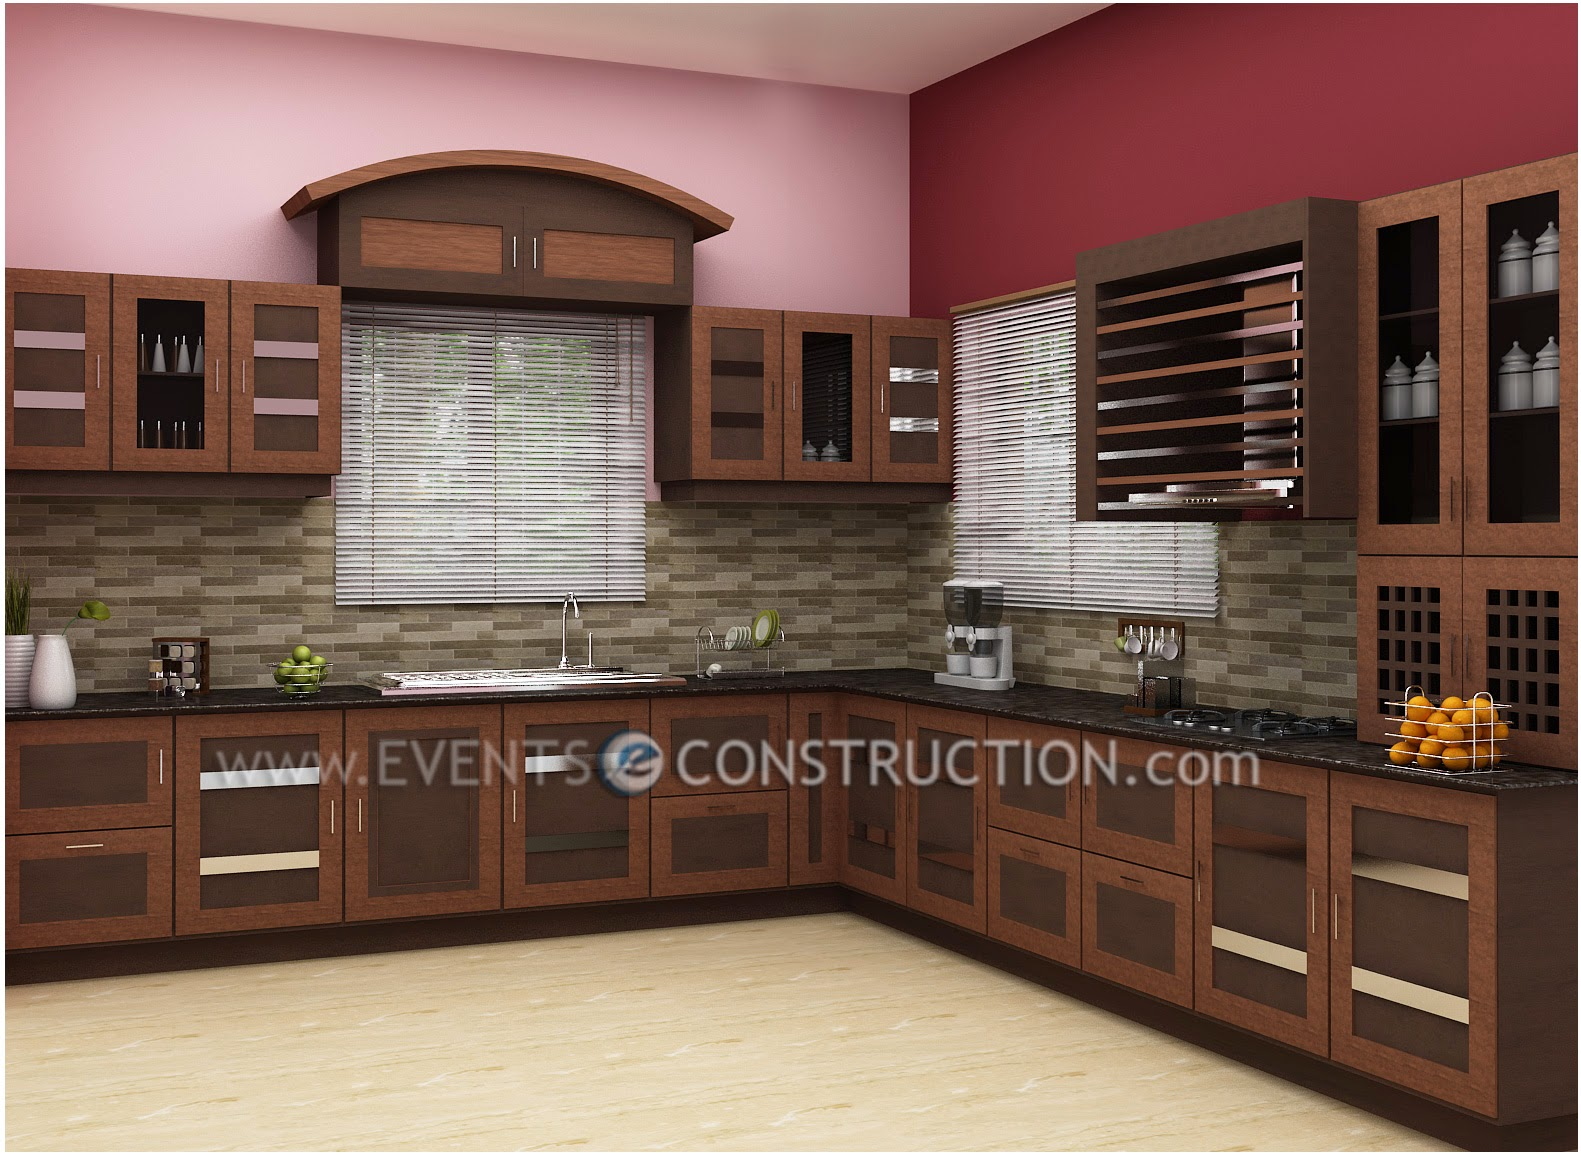 Evens construction pvt ltd march 2014 Wooden house kitchen design